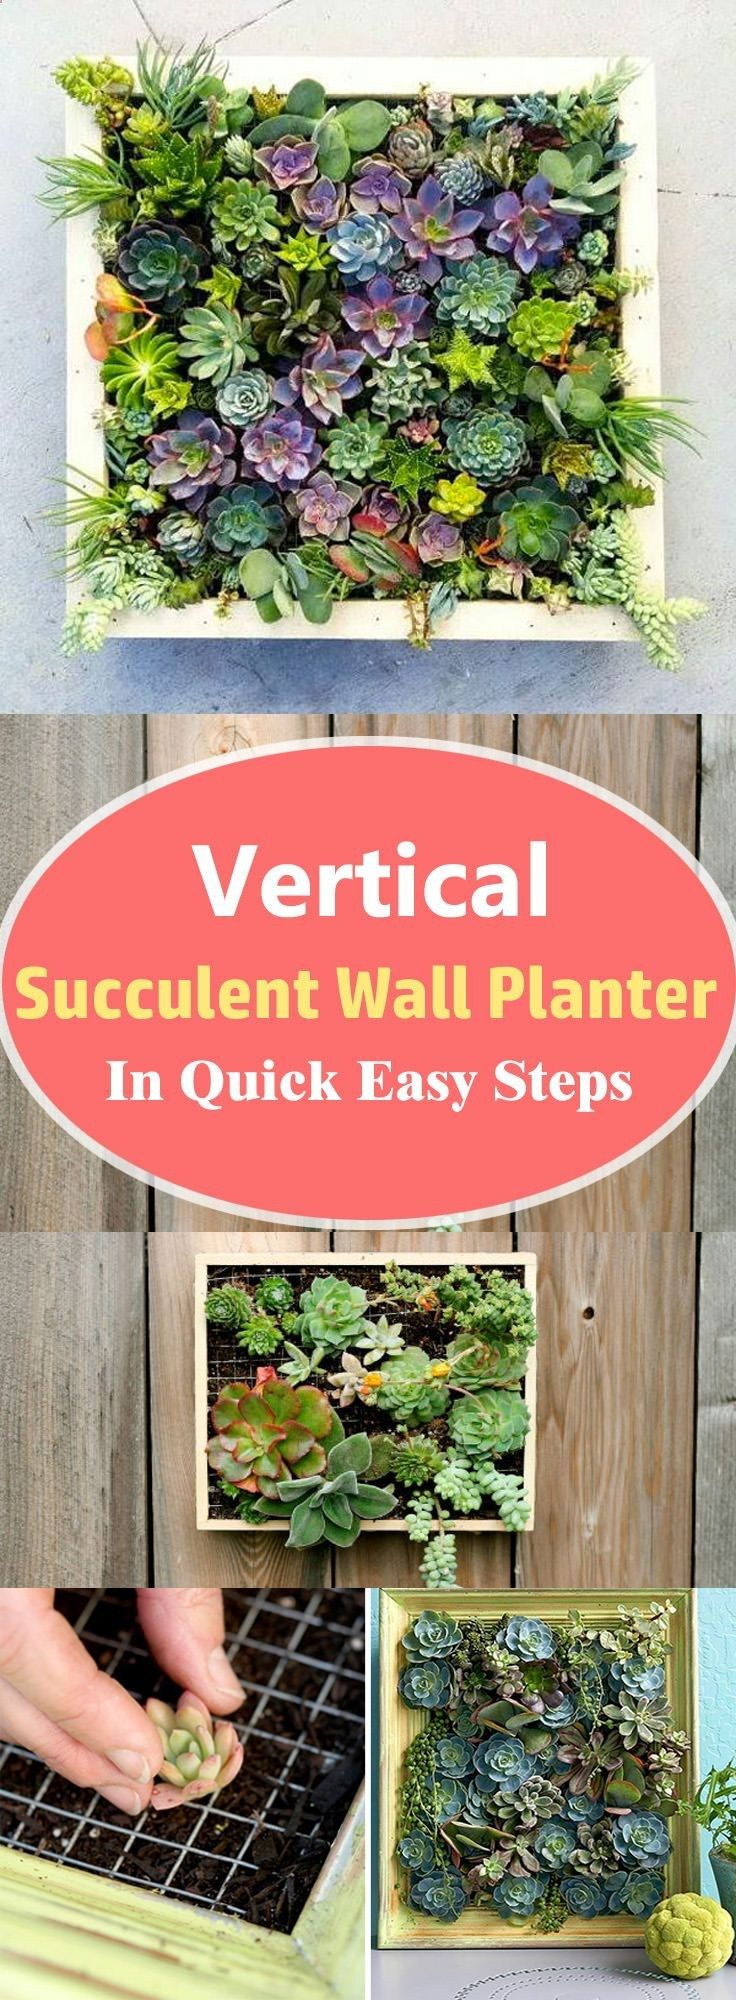 jardin vertical casero jardines verticales caseros aprende a dise arlos y mantenerlos precioso 1 Learn how to make a vertical succulent wall planter in a few steps without  spending money